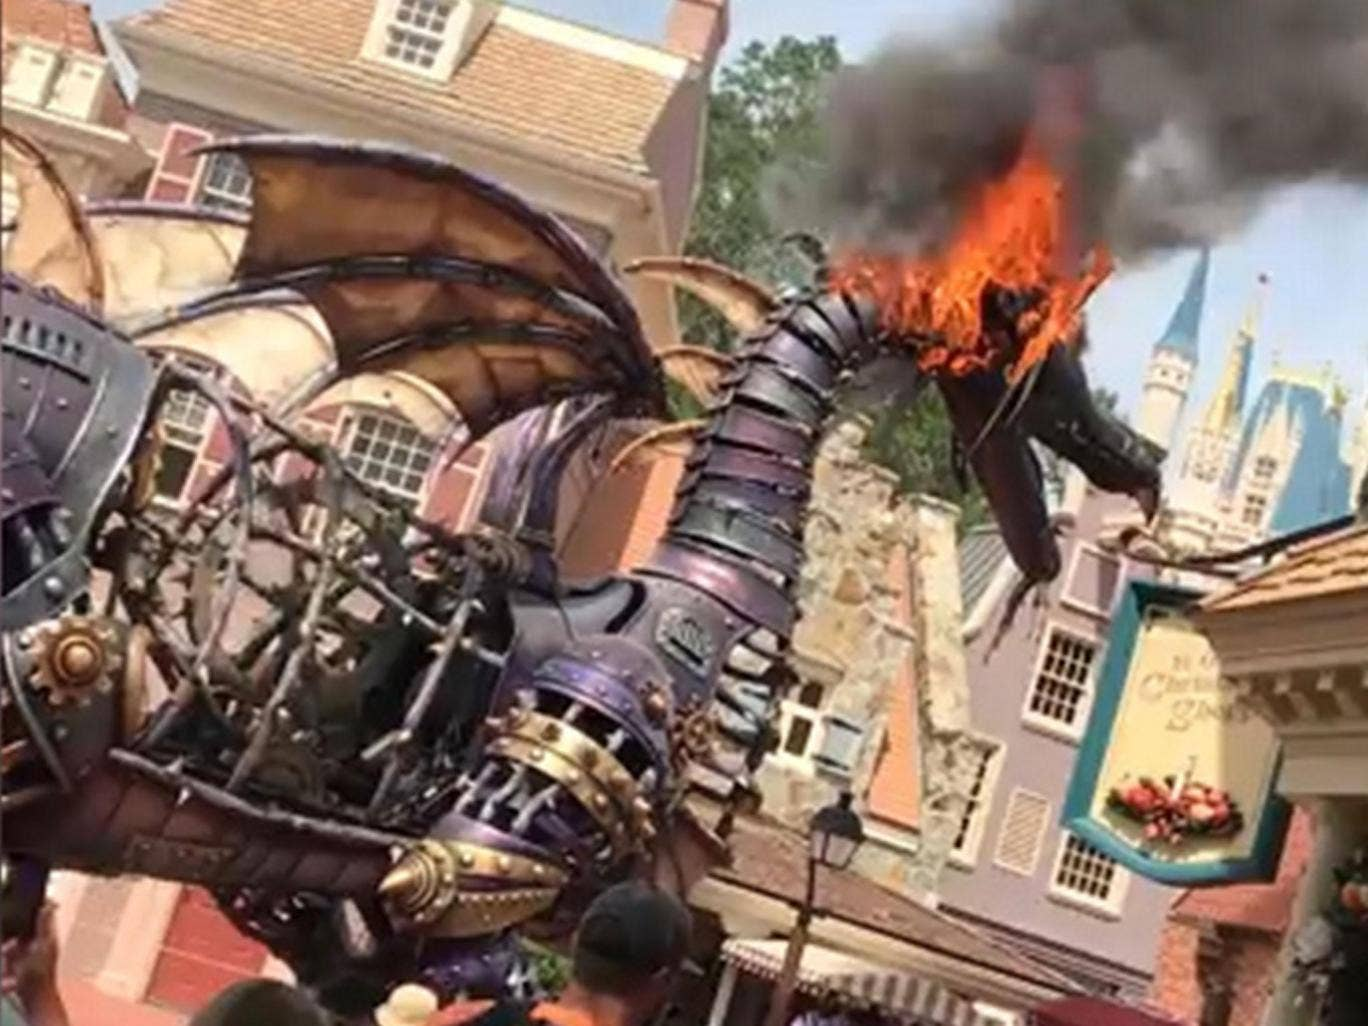 Teenager Who Started Massive Oregon Wildfire Ordered To Pay 37 Diagrams Dragon School Of Motoring Fire Breathing At Disney World Parade Bursts Into Flames